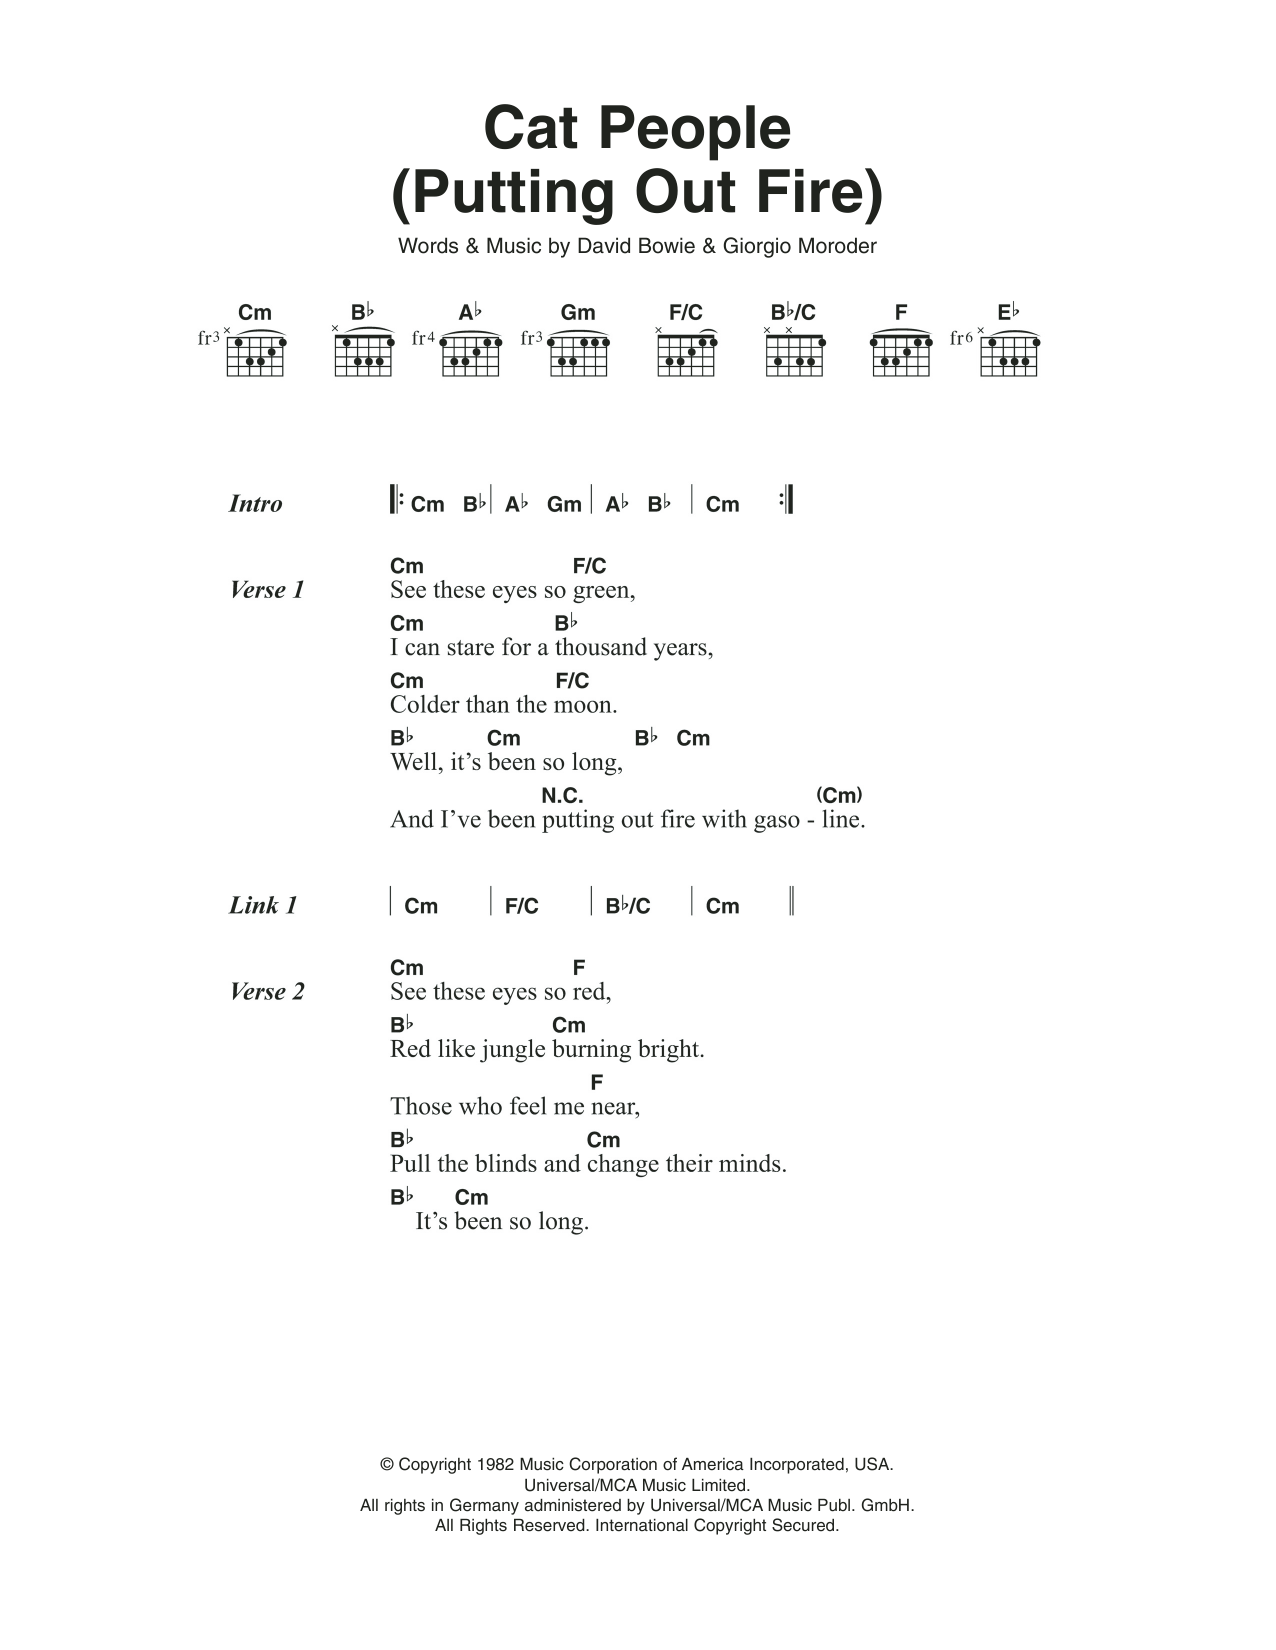 Cat people putting out fire by david bowie guitar chords the most accurate tab hexwebz Gallery